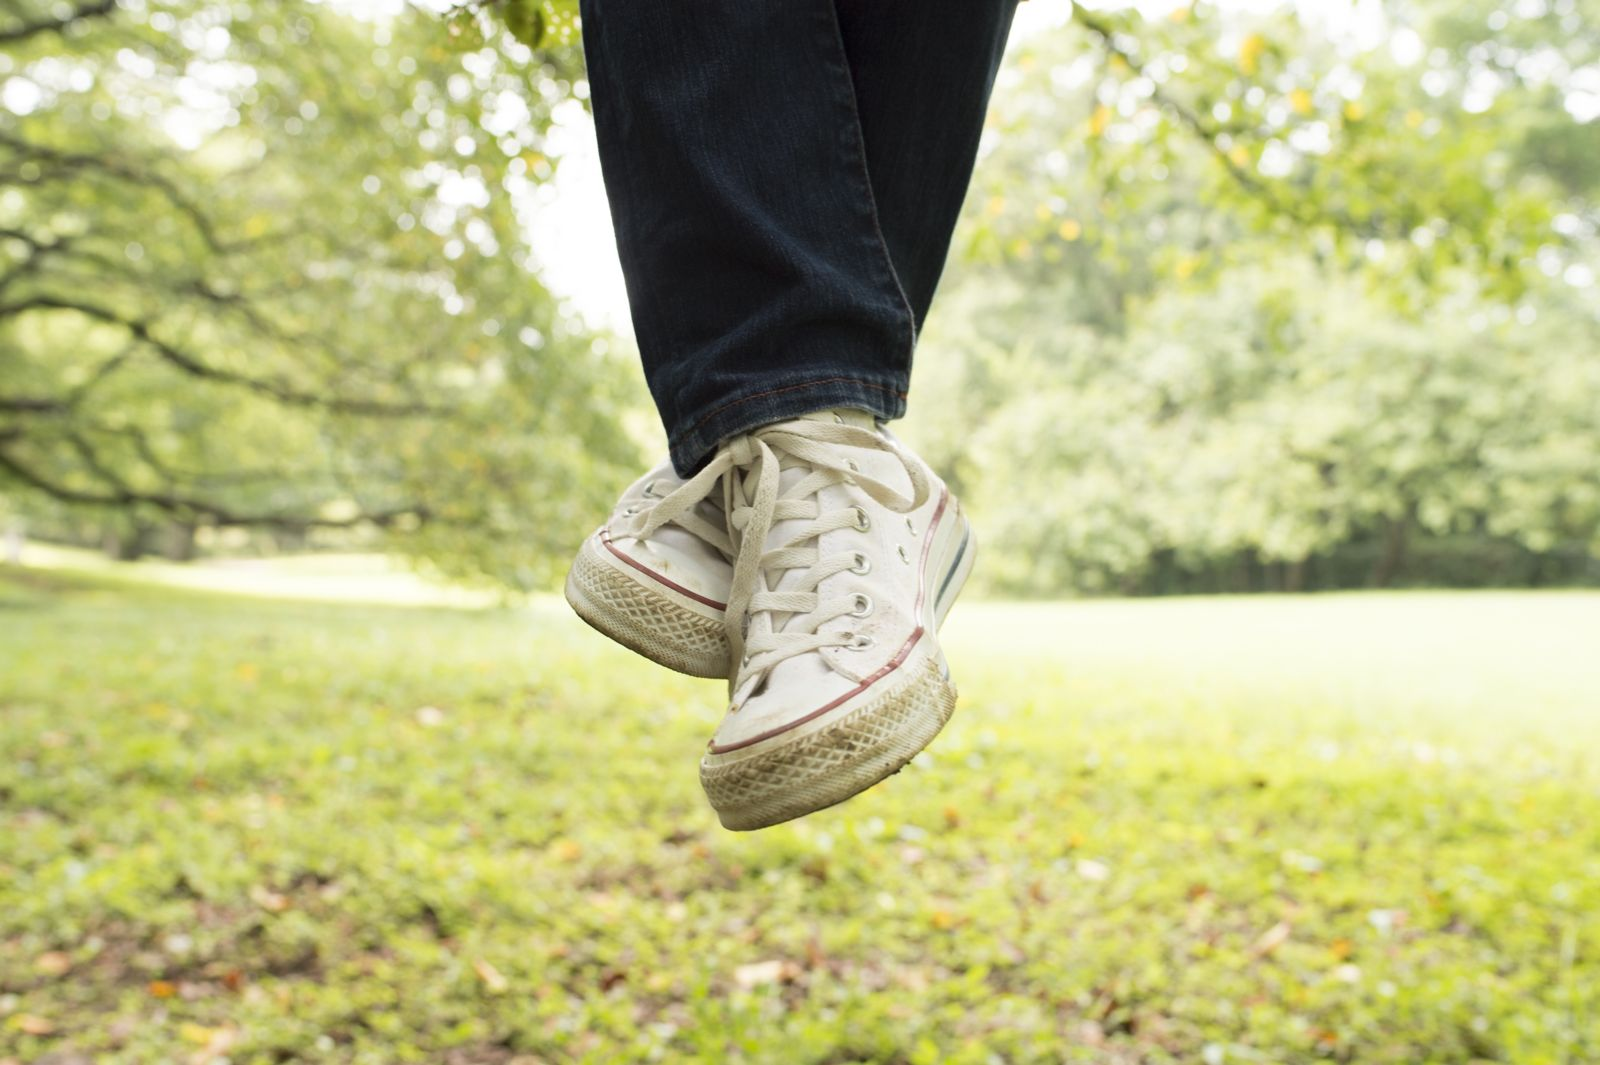 Don't bring the outside--and it's germs--into your clean, foot-safe home